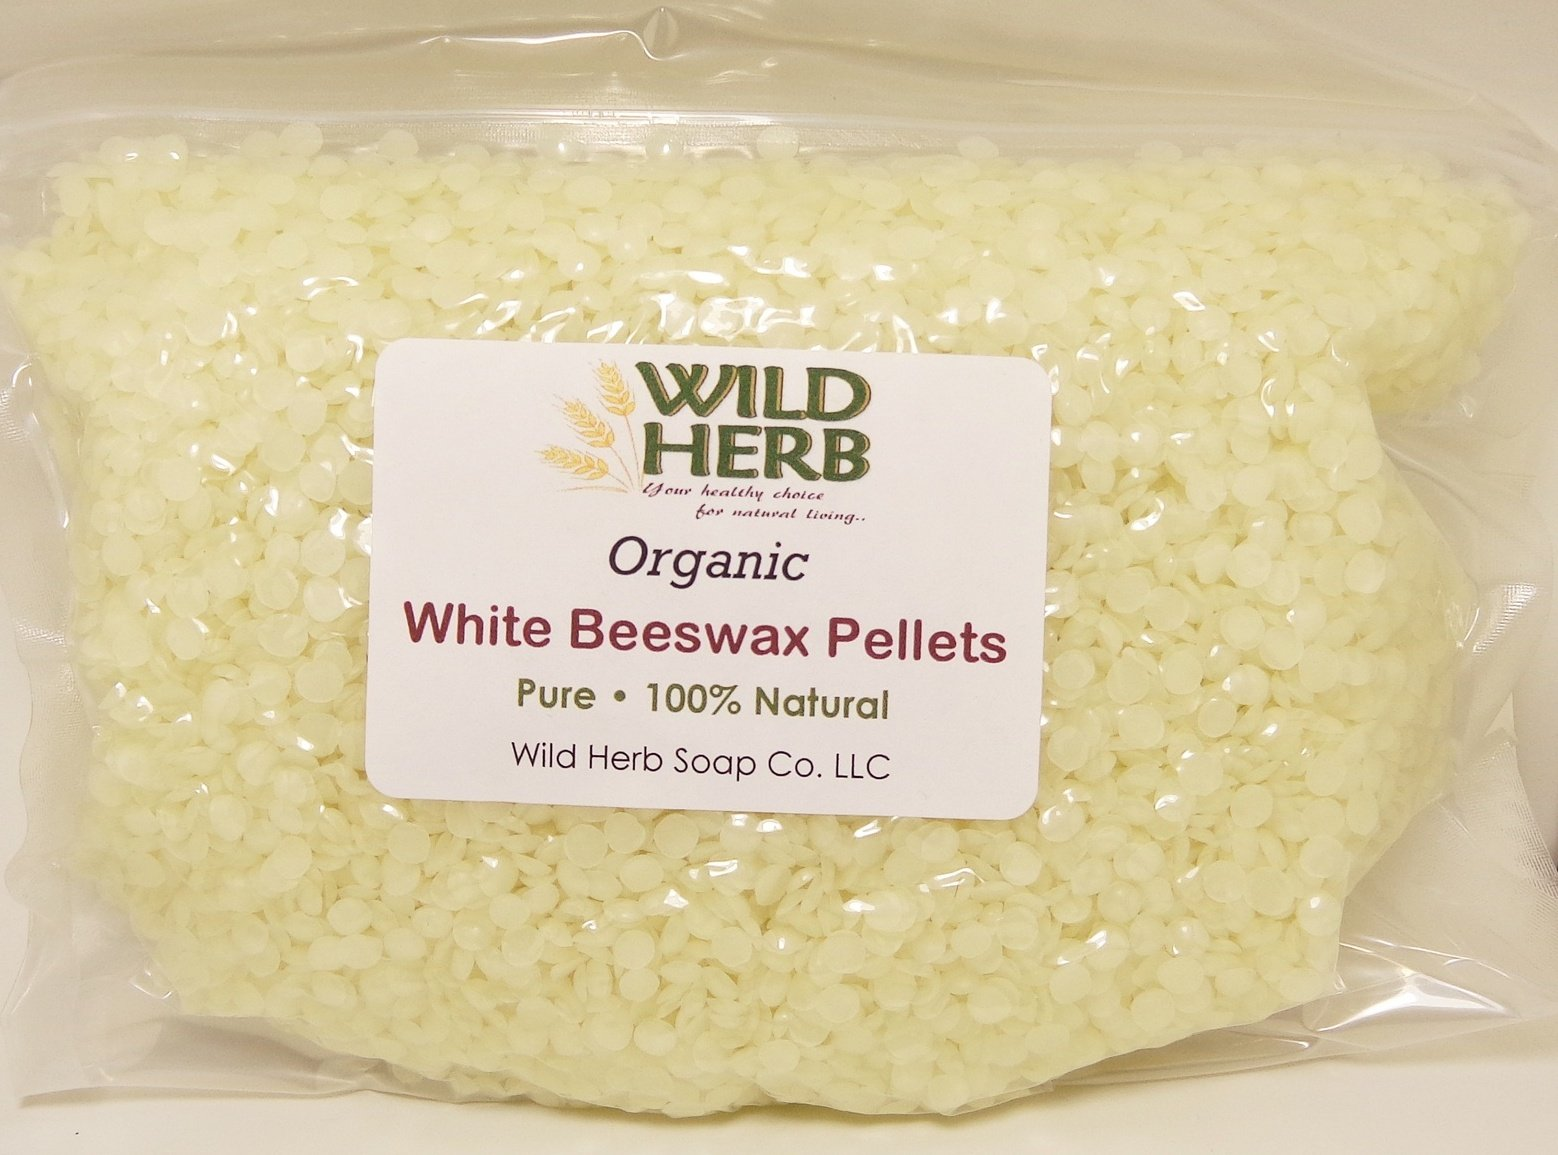 White Beeswax Pellets Organic by Wild Herb Soap Co (Image #1)